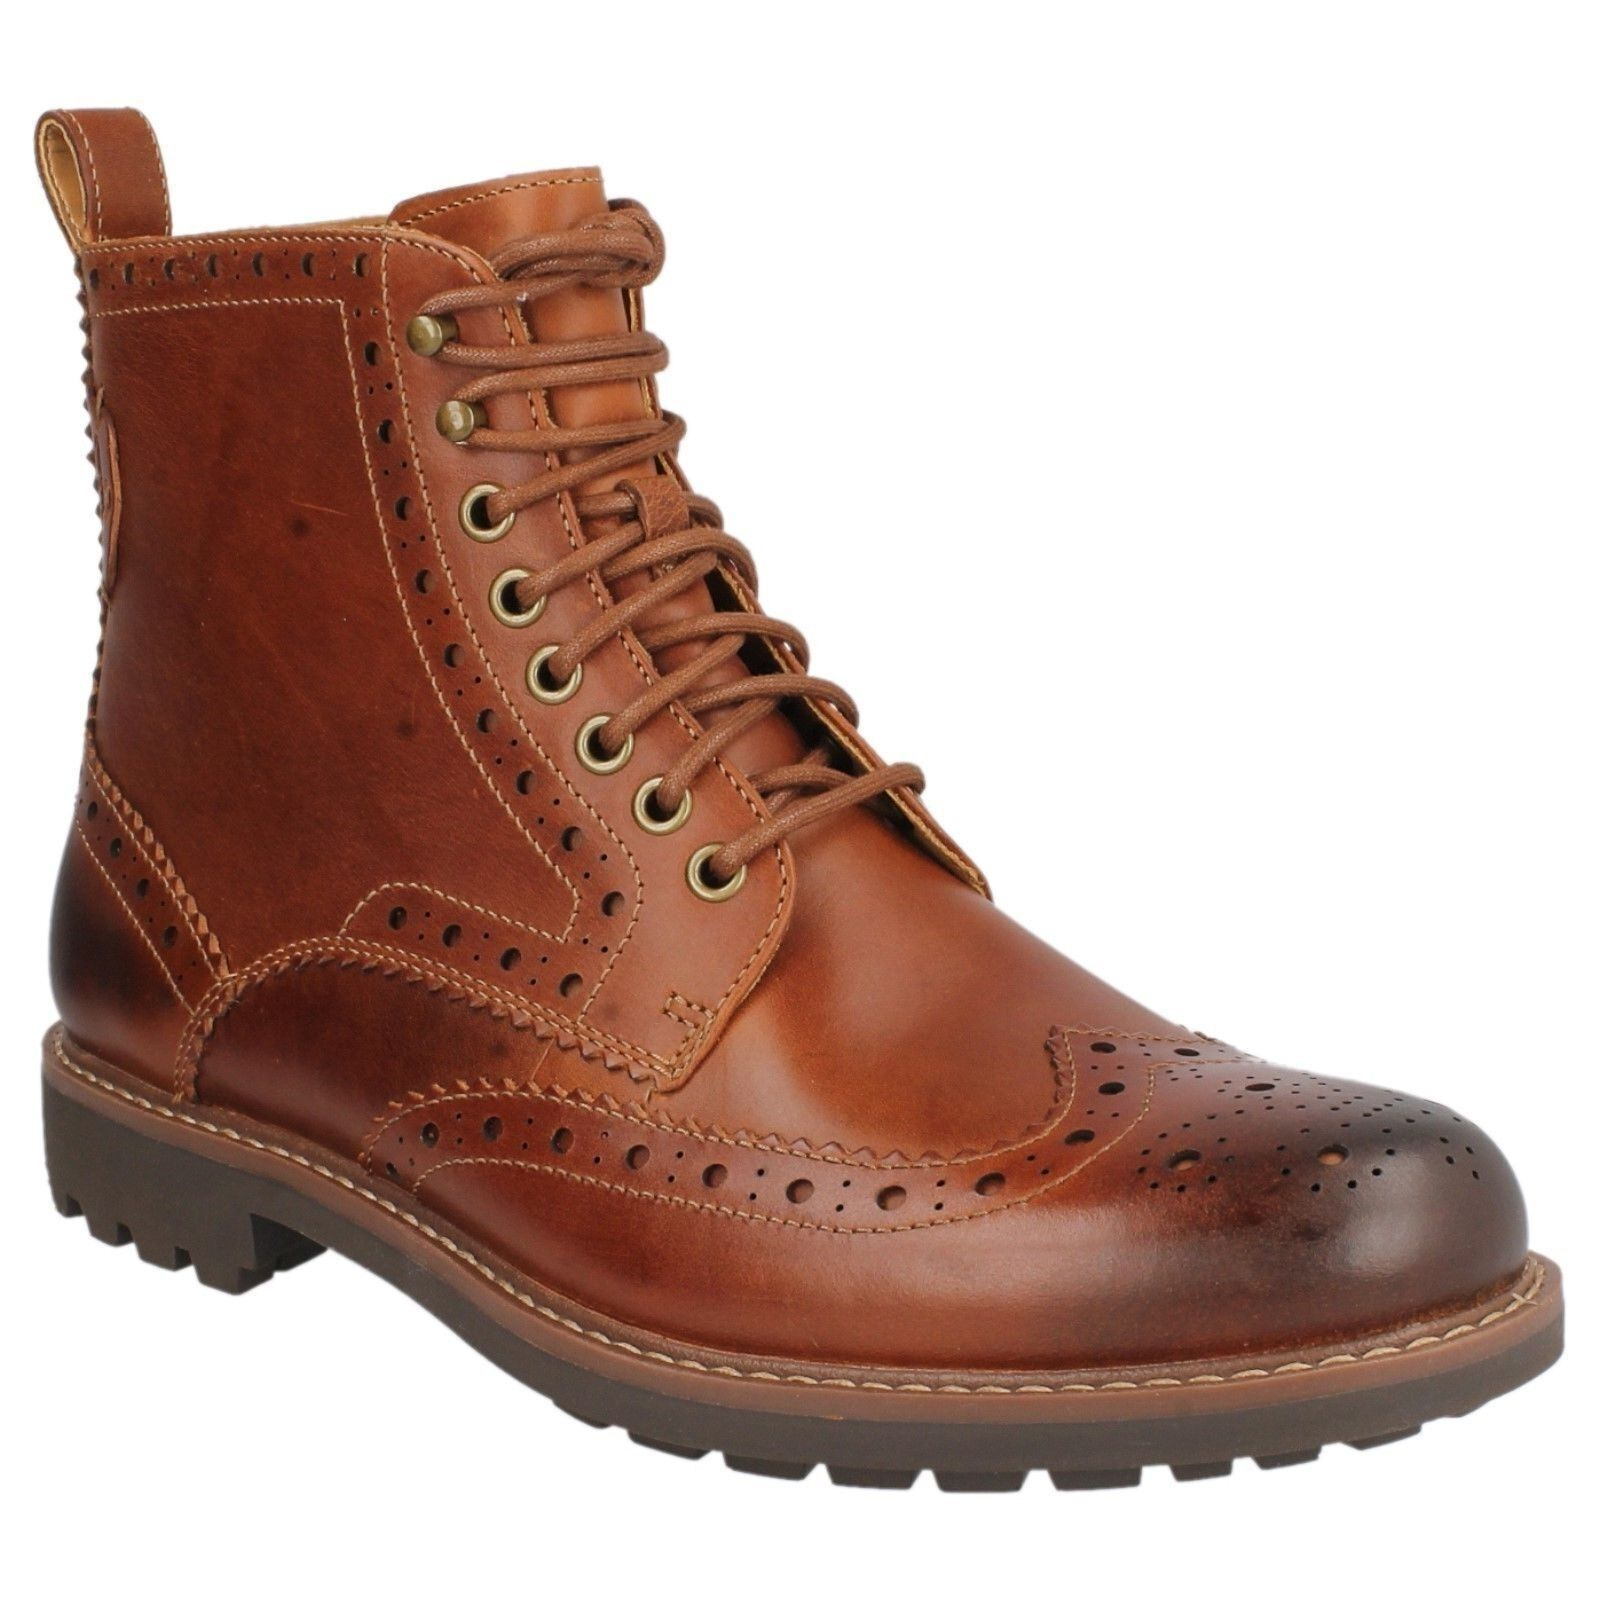 MENS MENS MENS CLARKS DARK TAN LEATHER LACE UP BROGUE CASUAL ANKLE BOOTS MONTACUTE LORD 6f7086